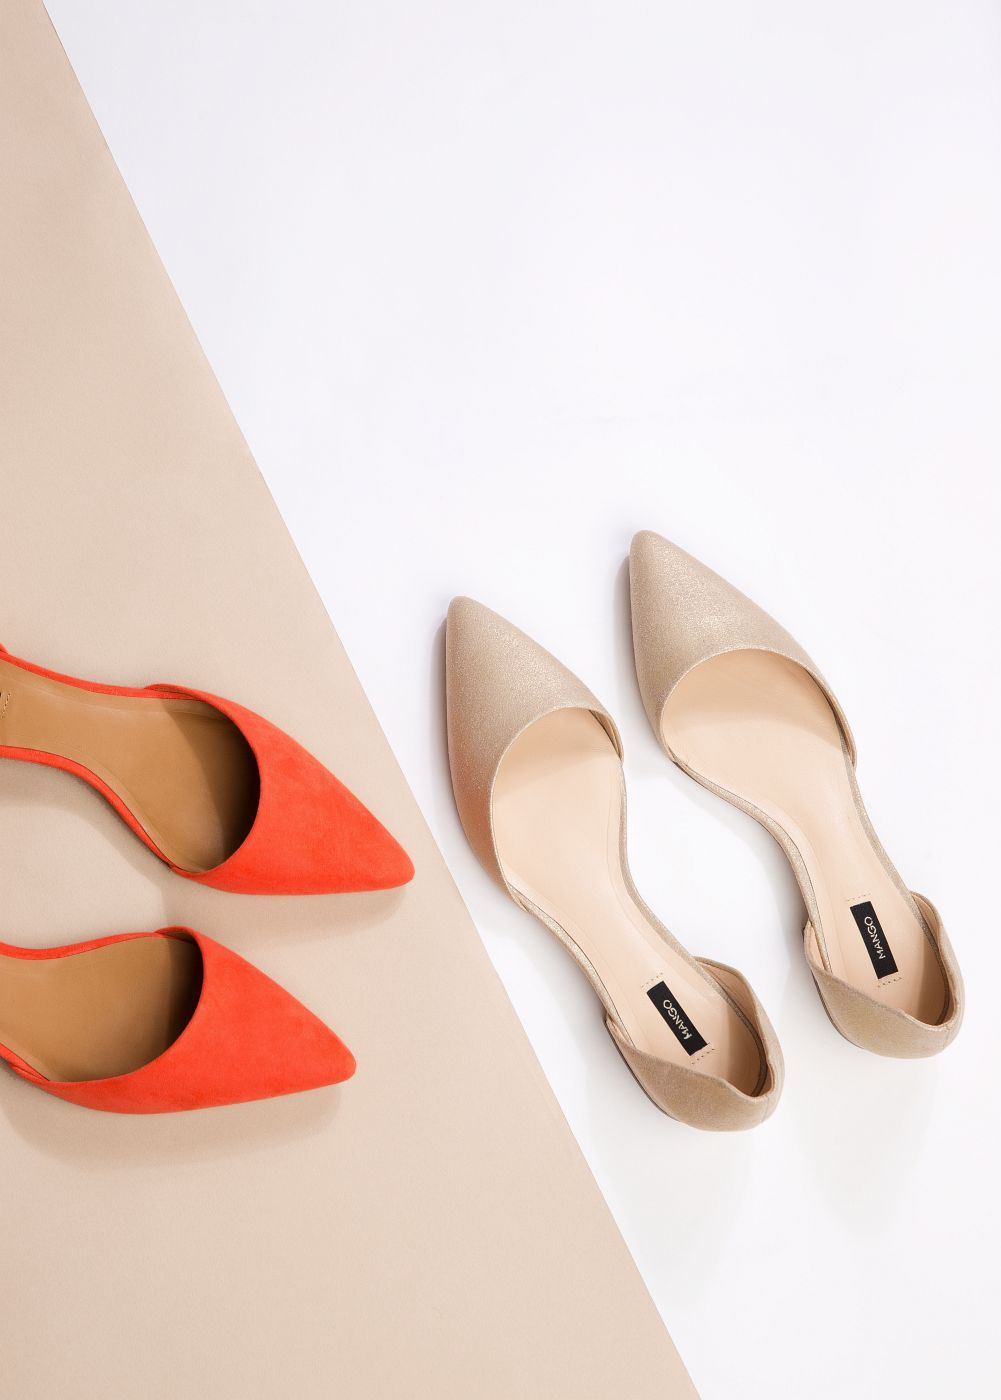 Pointed toe flat shoes - Mango